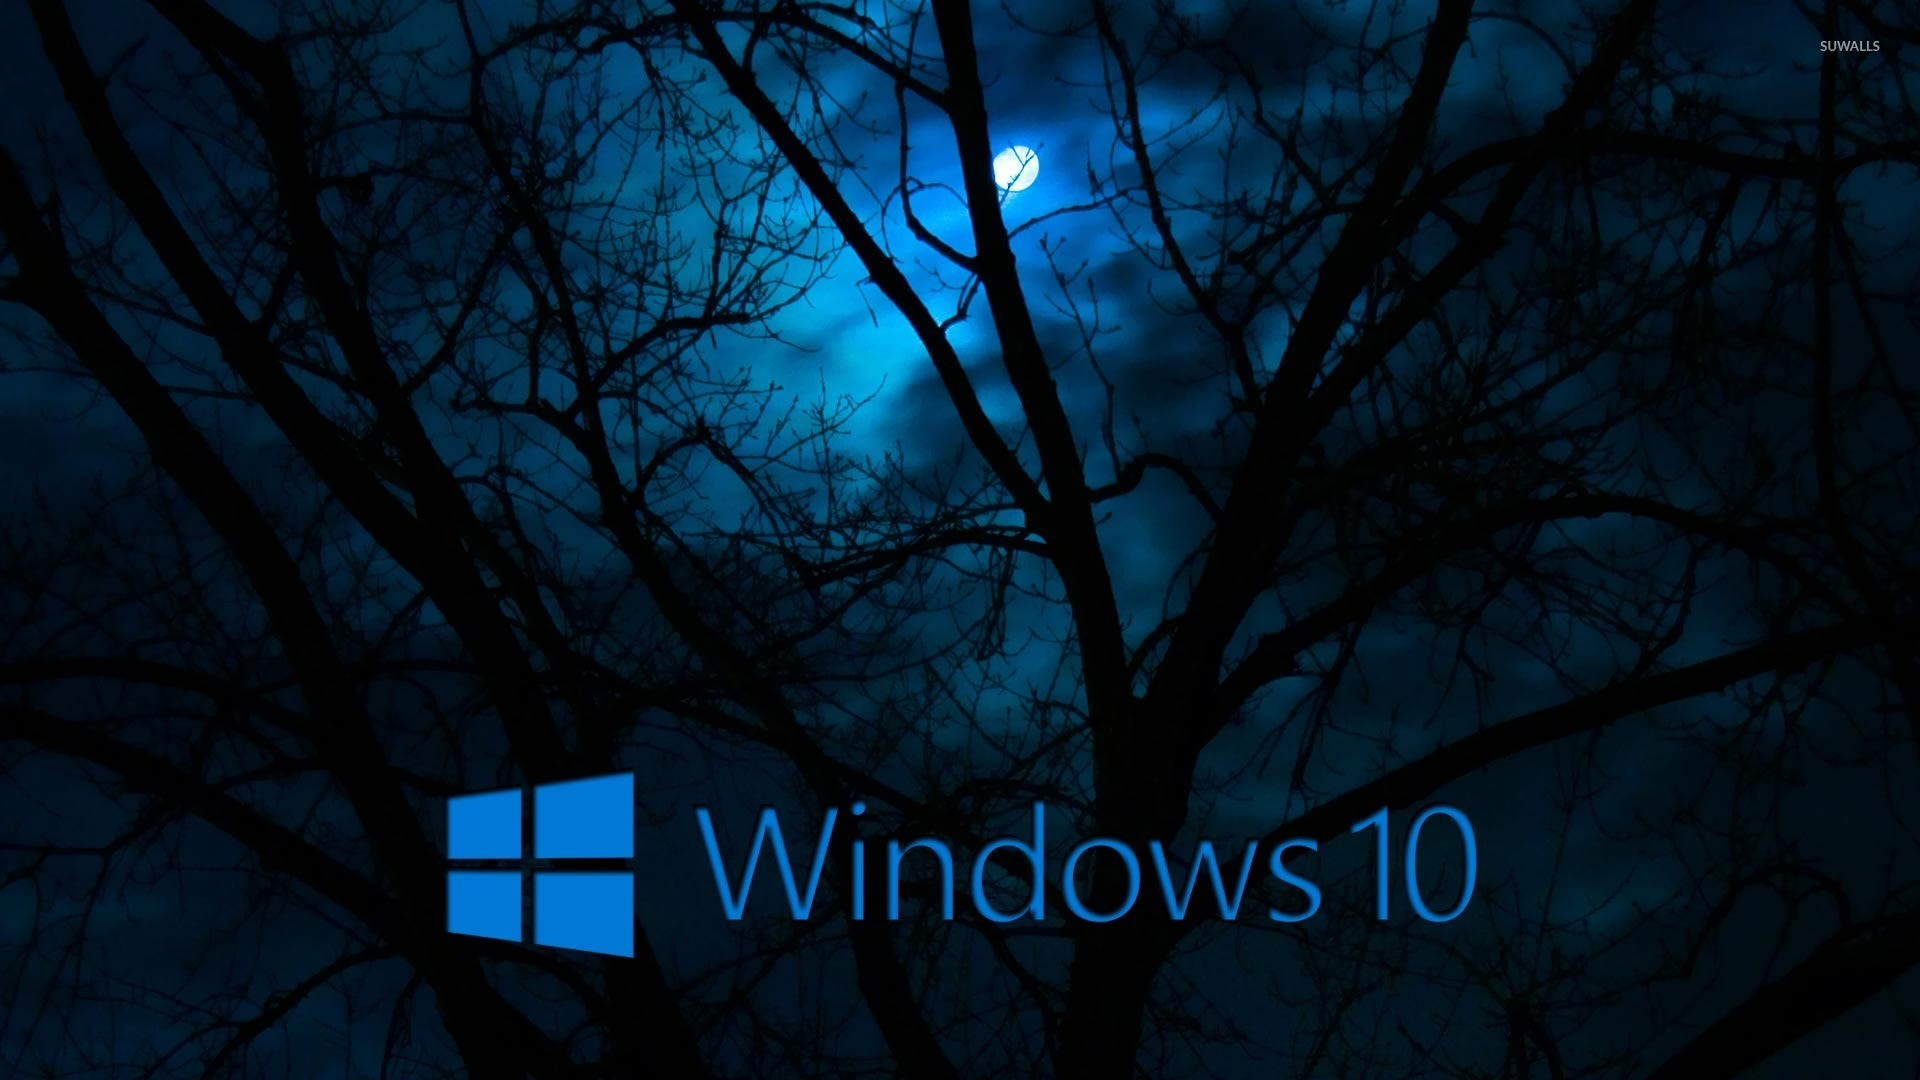 Windows 10 Wallpapers 1920x1080 (74+ Images